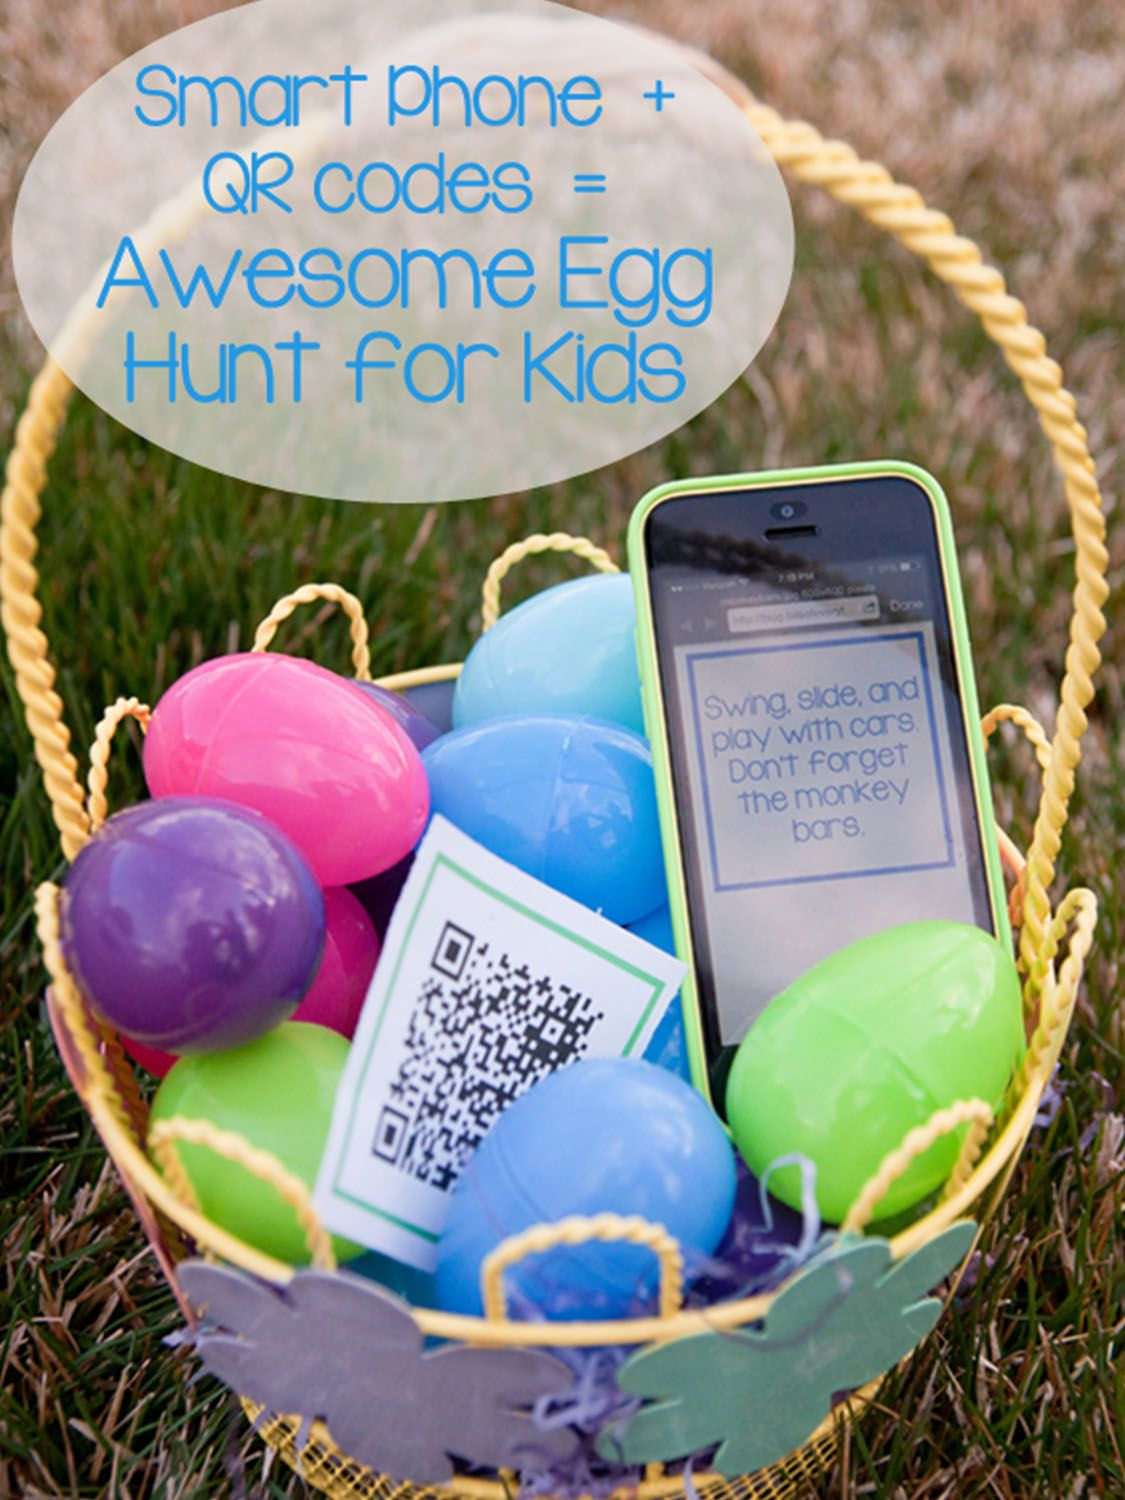 20 fun easter egg hunt ideas for everyone creative and easy easter 20 fun easter egg hunt ideas for everyone creative and easy easter egg hunt ideas negle Choice Image